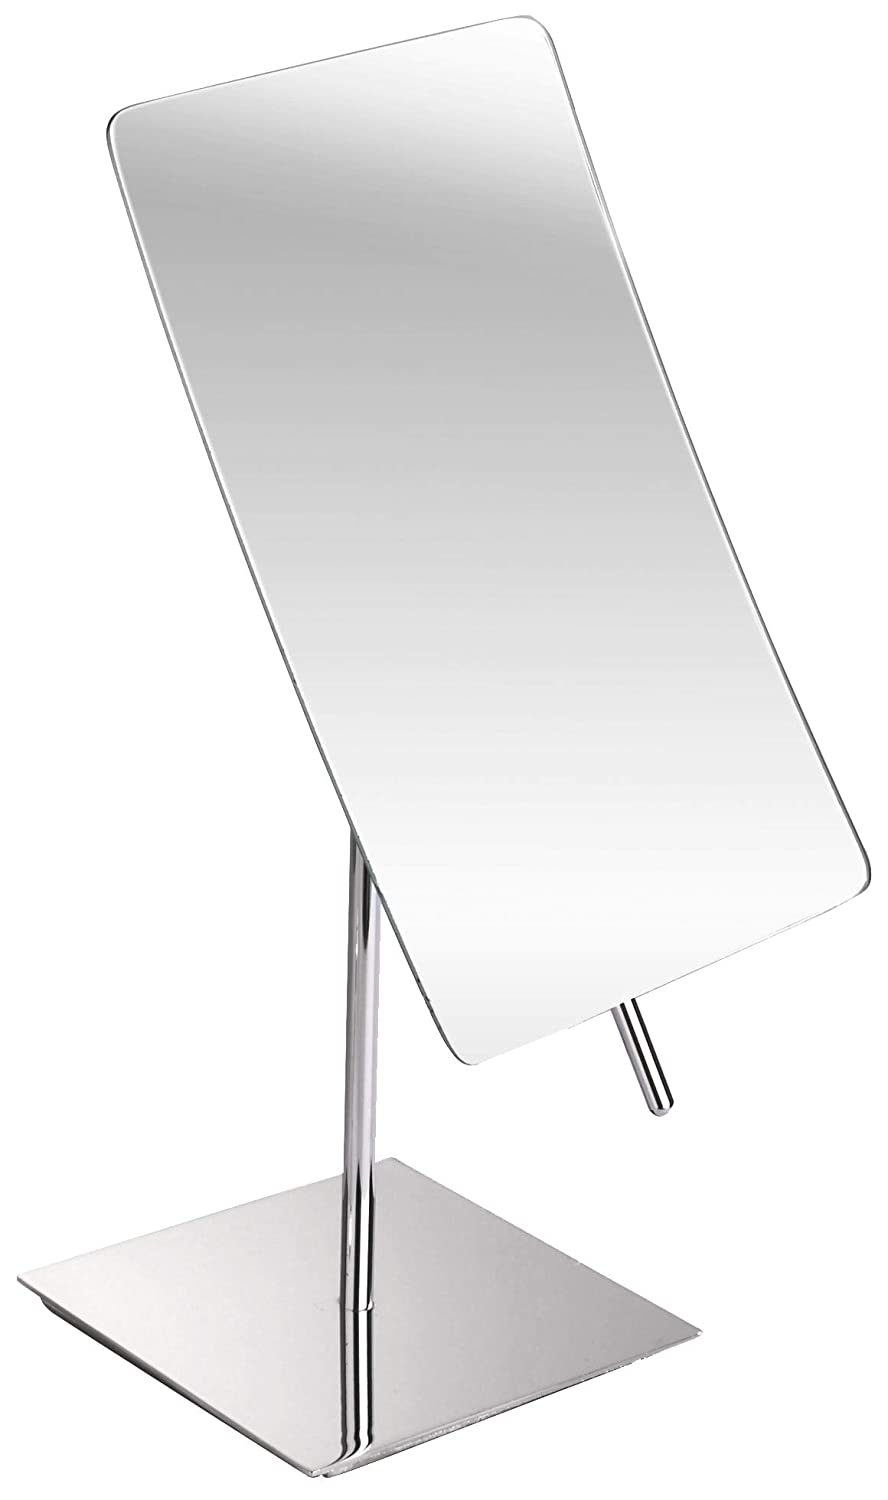 3X Magnified Premium Modern Rectangle Vanity Makeup Mirror 100 Guarantee Portable Polished Chrome Contemporary Finish Adjustable Easy Positioning Best Luxury Quality Magnifying Beauty Mirror